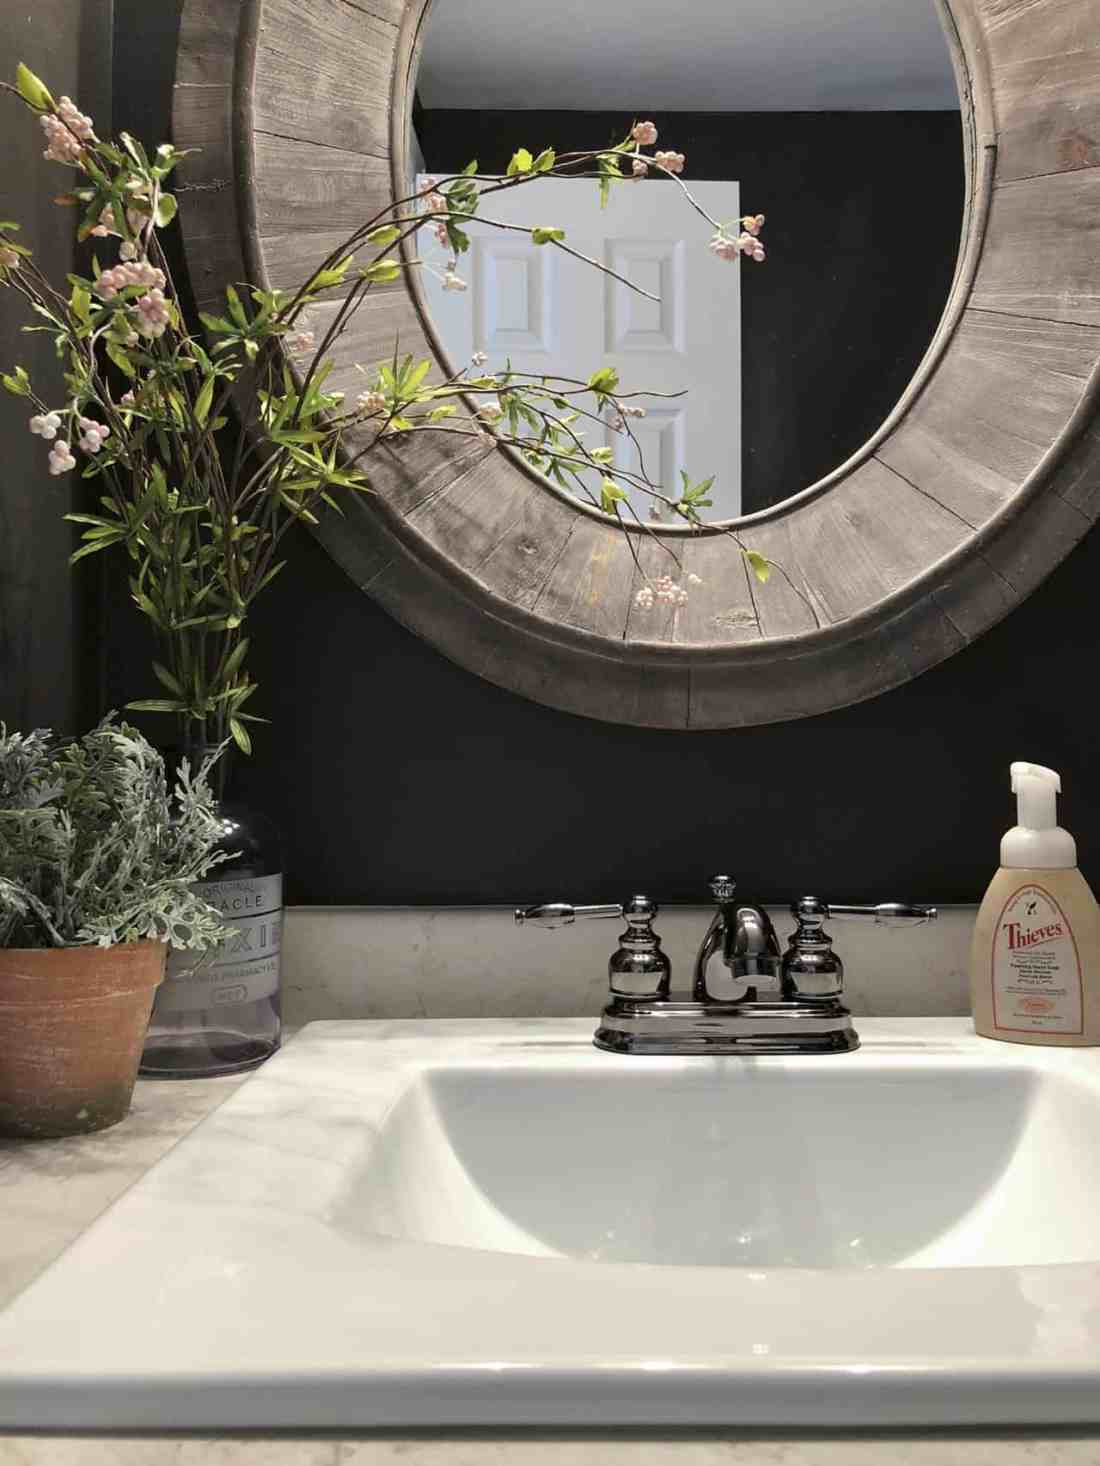 Wood oval mirror black walls white sink black faucet